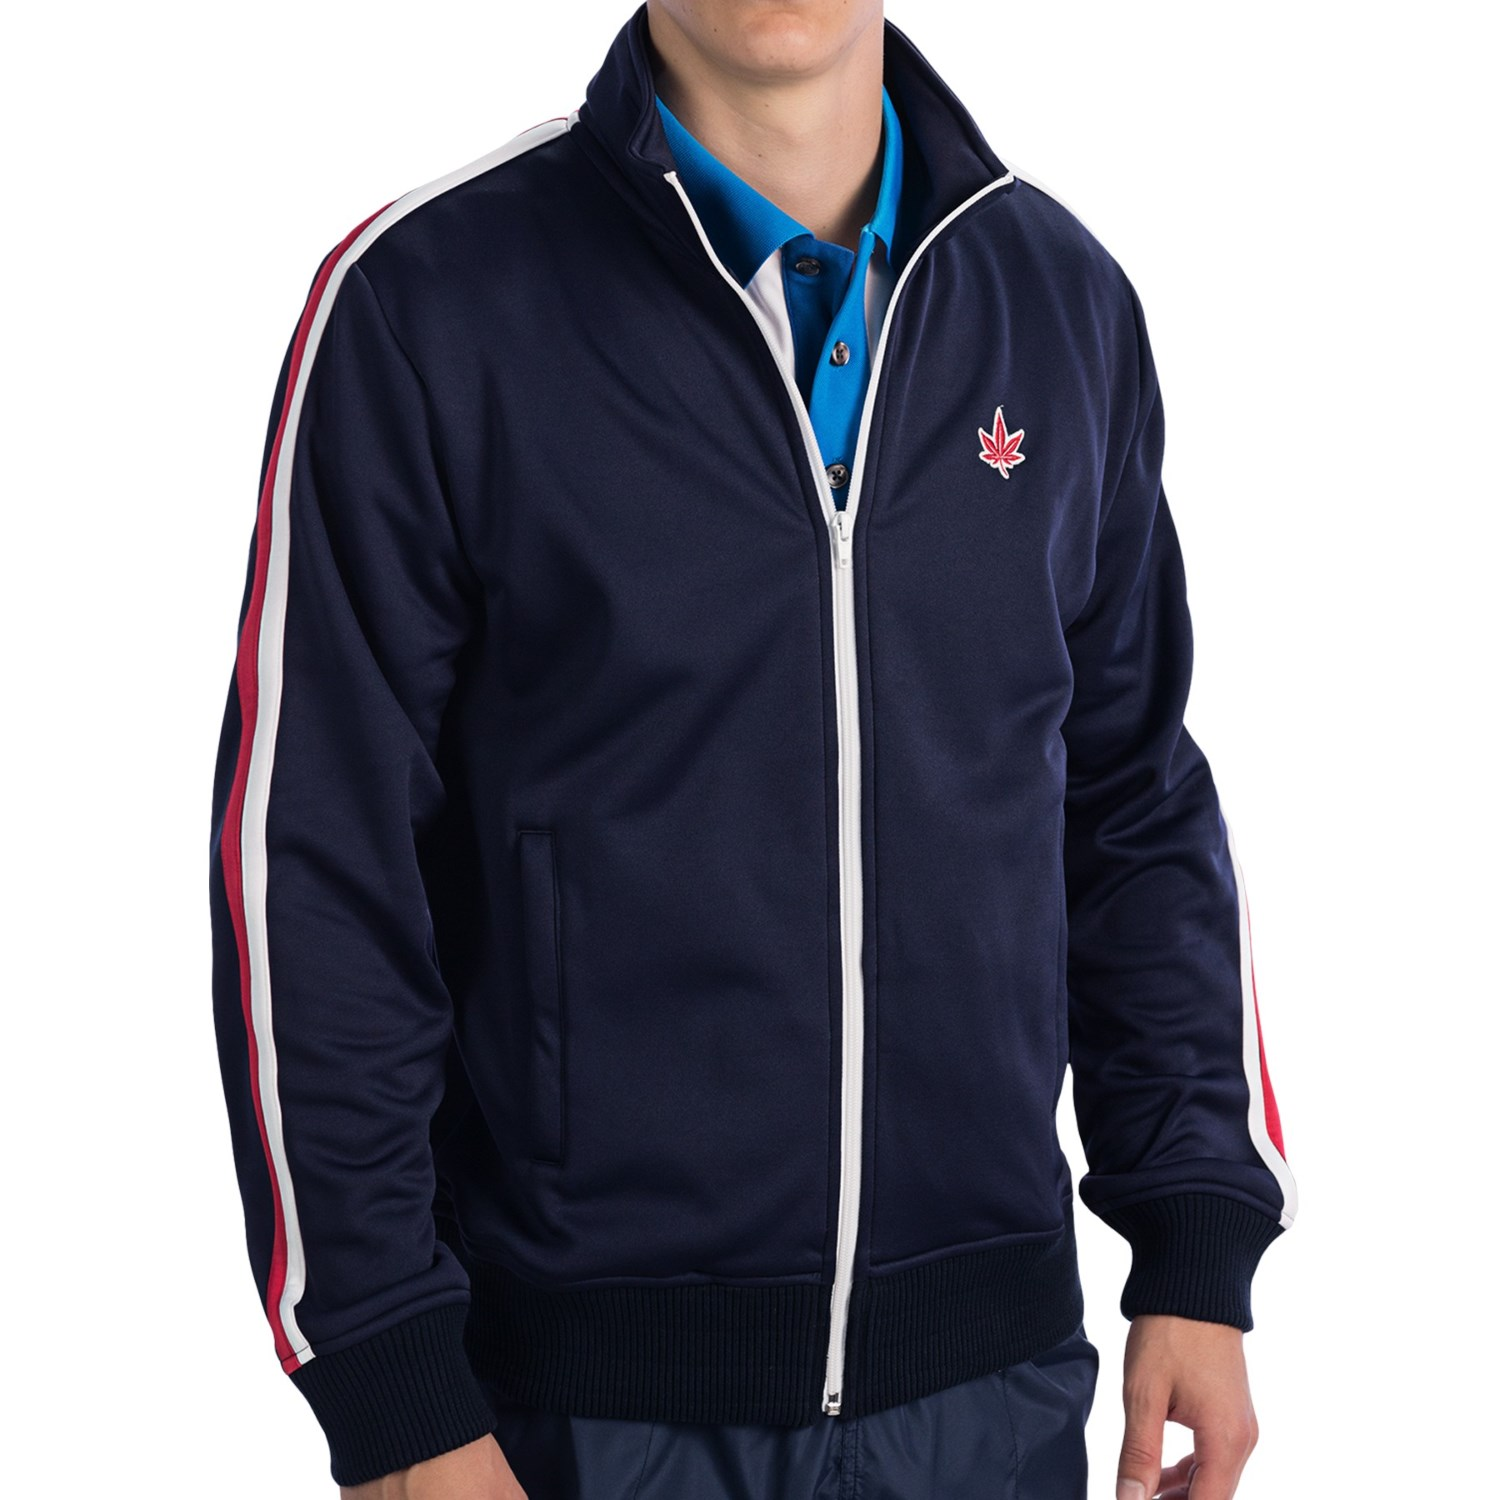 eskorte-tjenesten i usa fleece